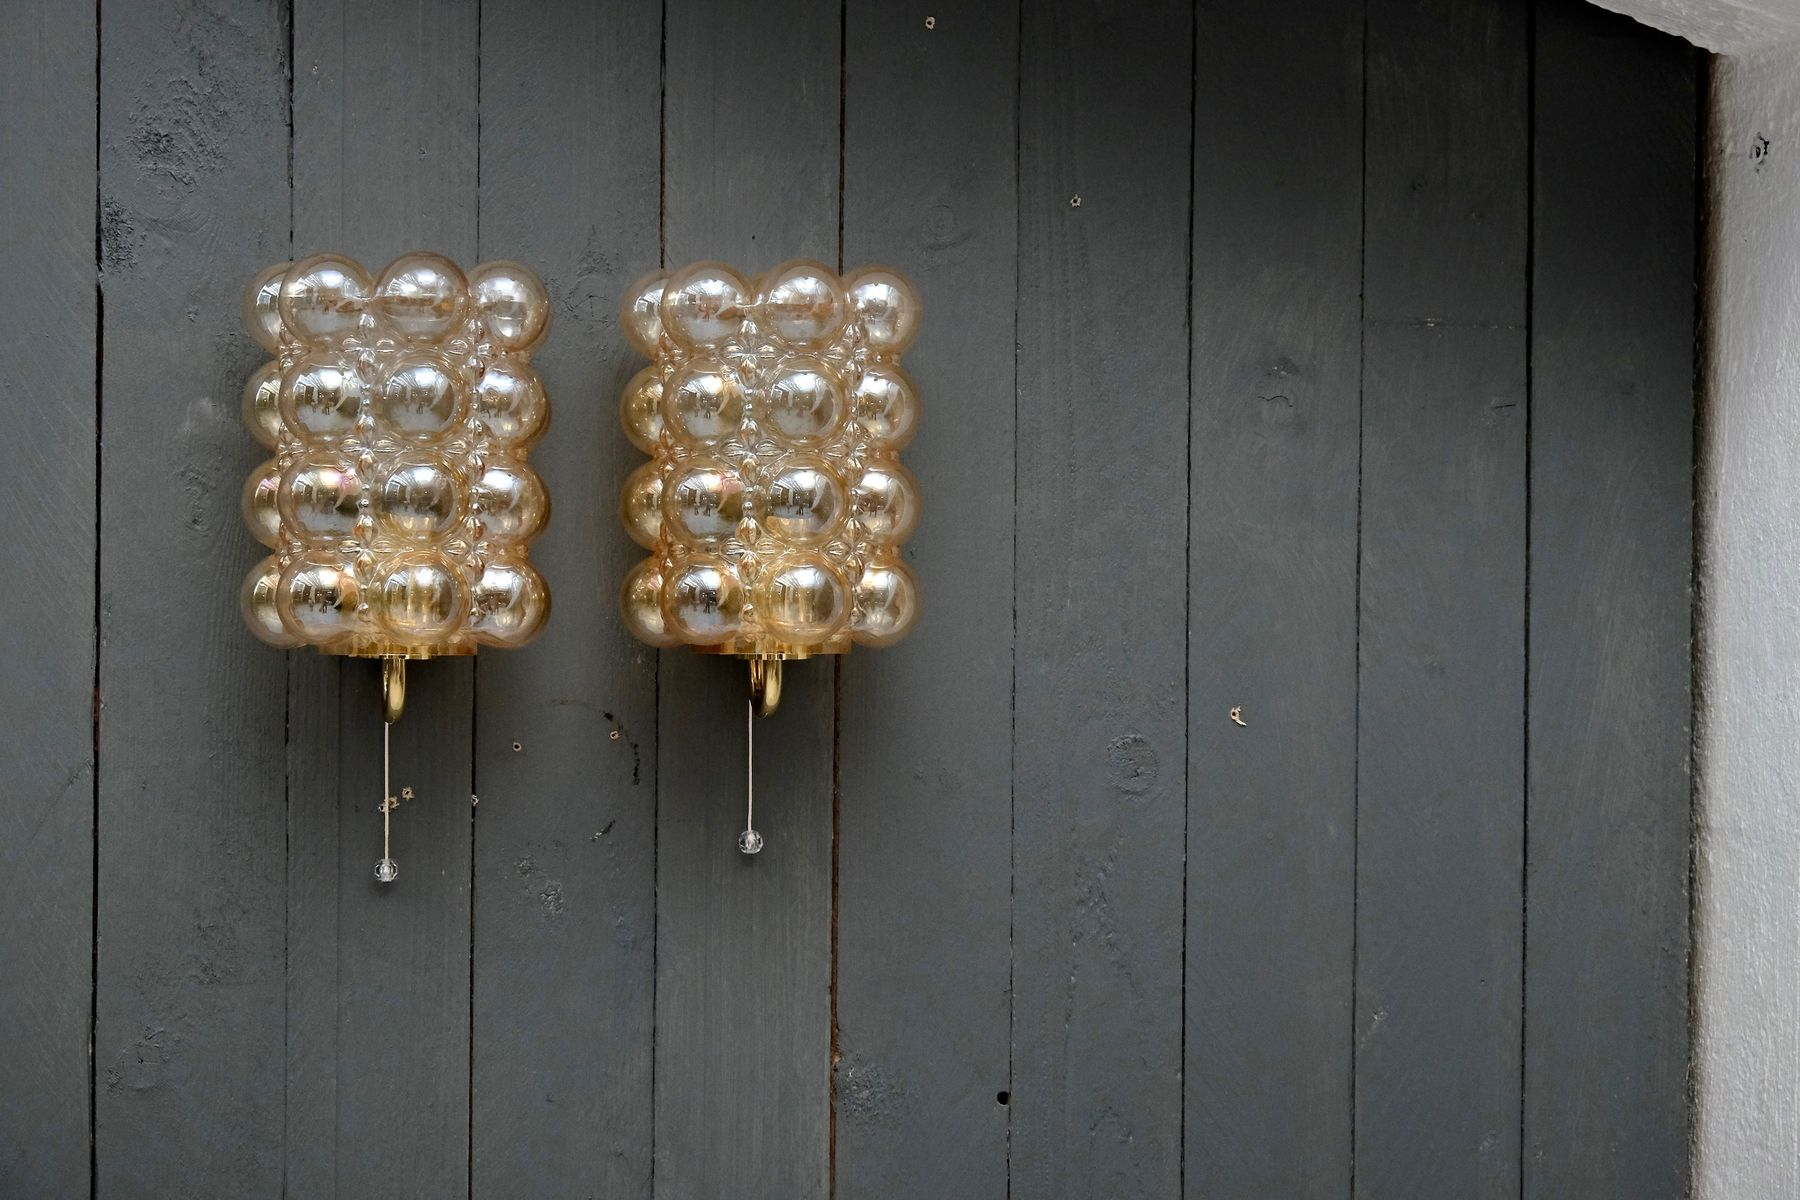 Amber Glass Wall Lights : Brass & Amber Glass Wall Lights by Helena Tynell for Glashutte Limburg, 1960s, Set of 2 for sale ...